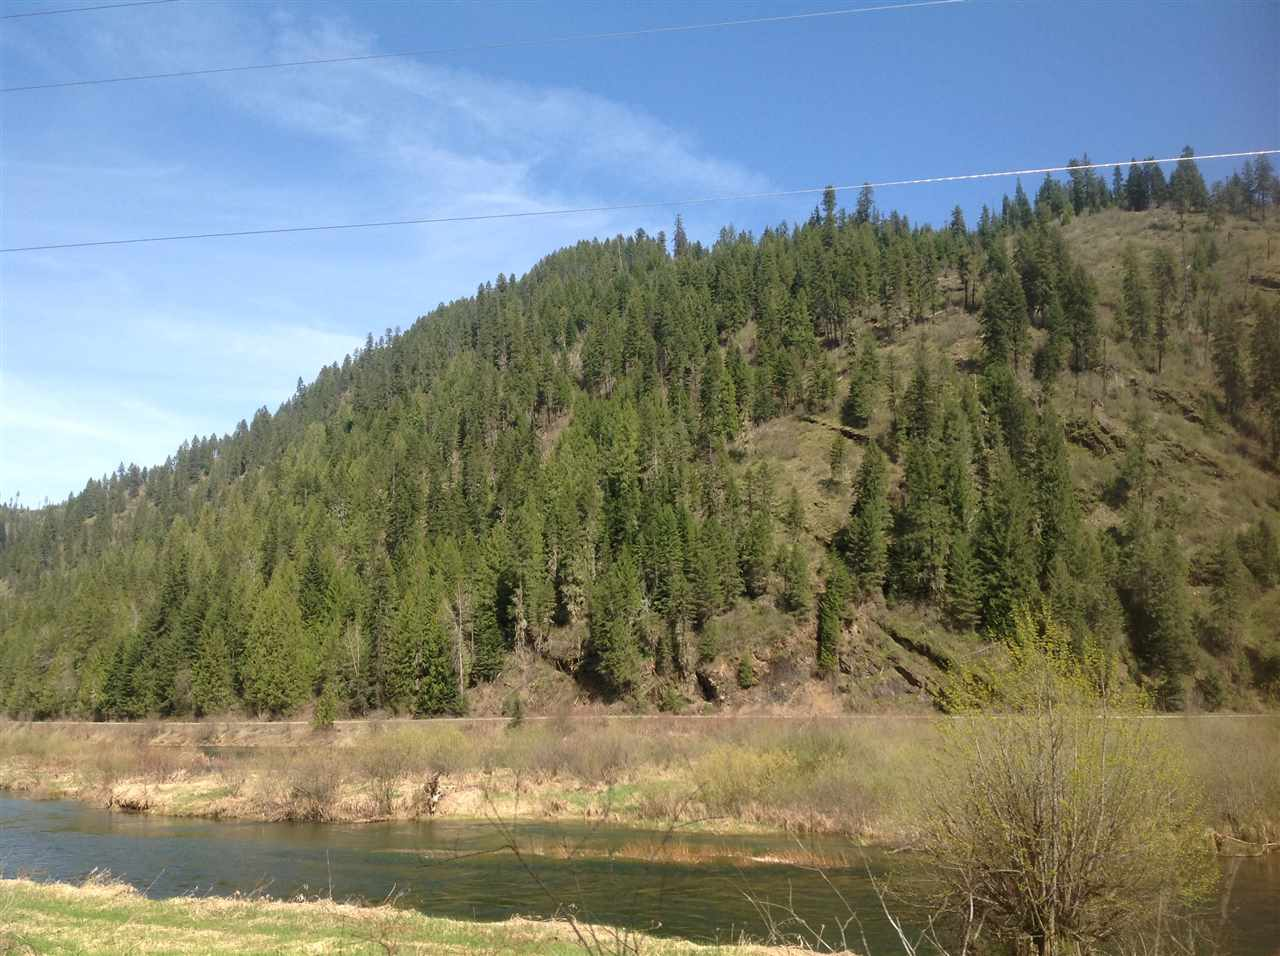 Recreational Property for Sale at Tract 1 Mutch Creek Road Tract 1 Mutch Creek Road St. Maries, Idaho 83861